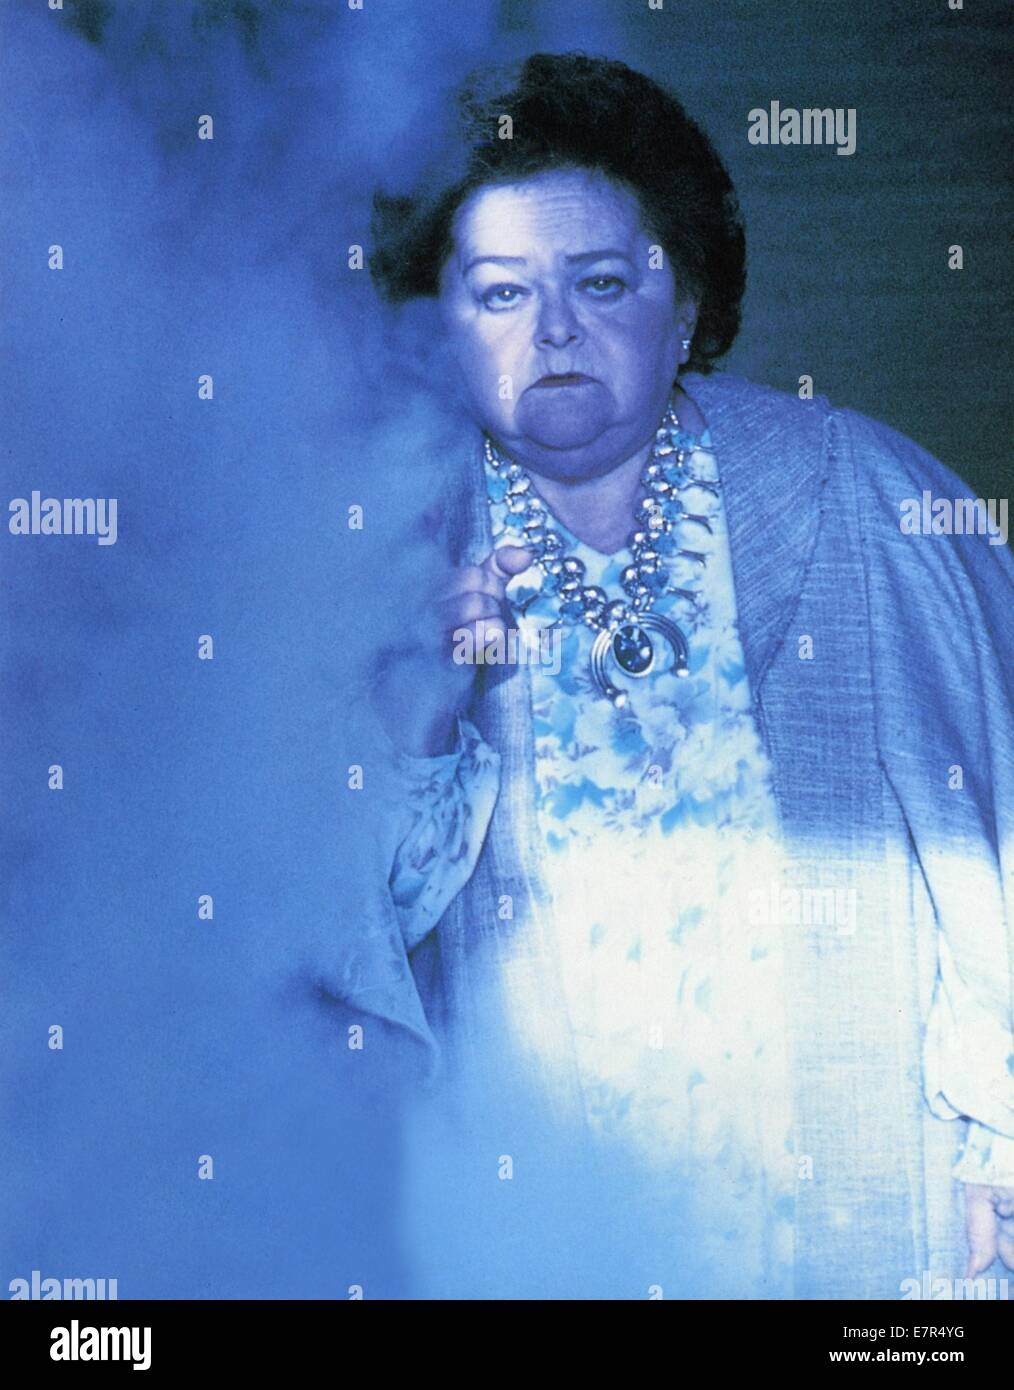 zelda rubinstein height